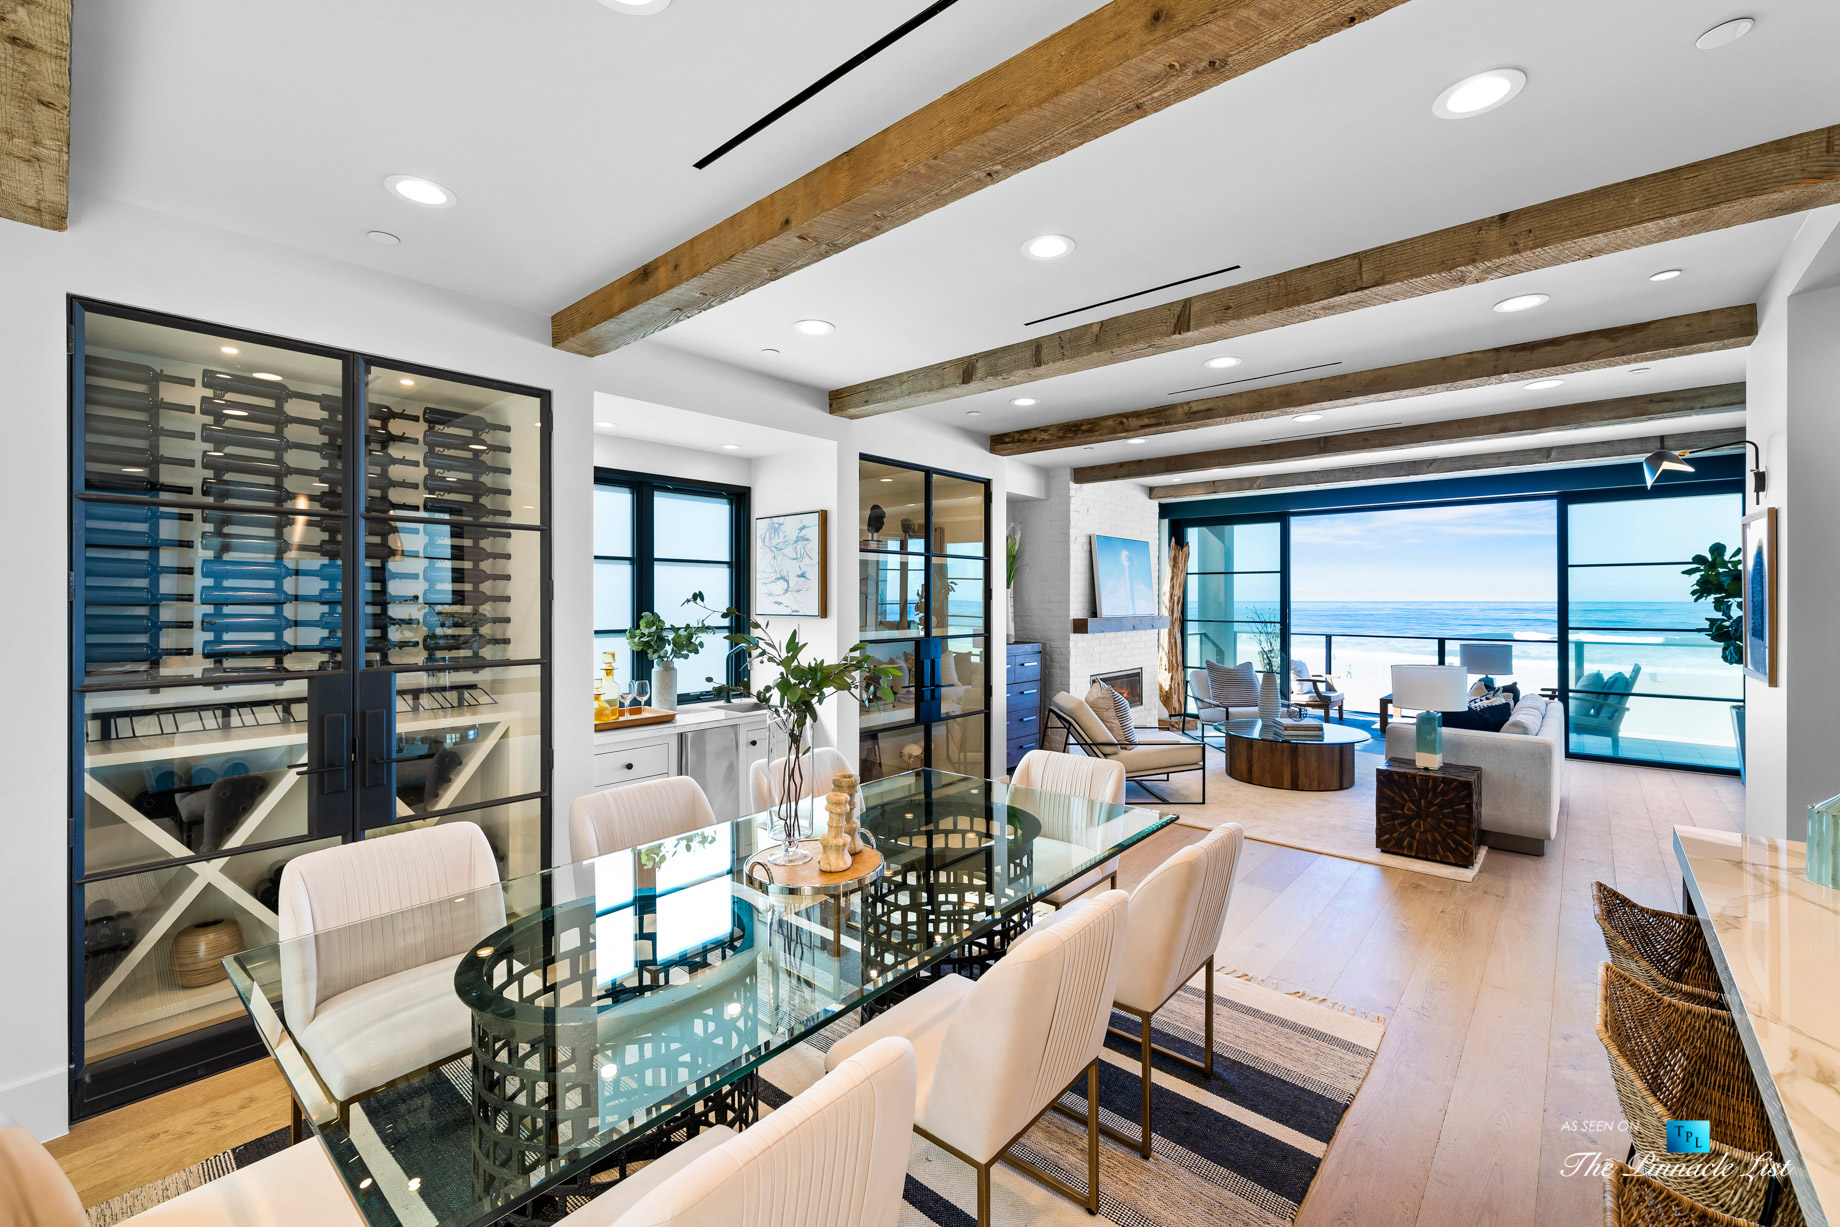 508 The Strand, Manhattan Beach, CA, USA - Dining and Living Room - Luxury Real Estate - Oceanfront Home